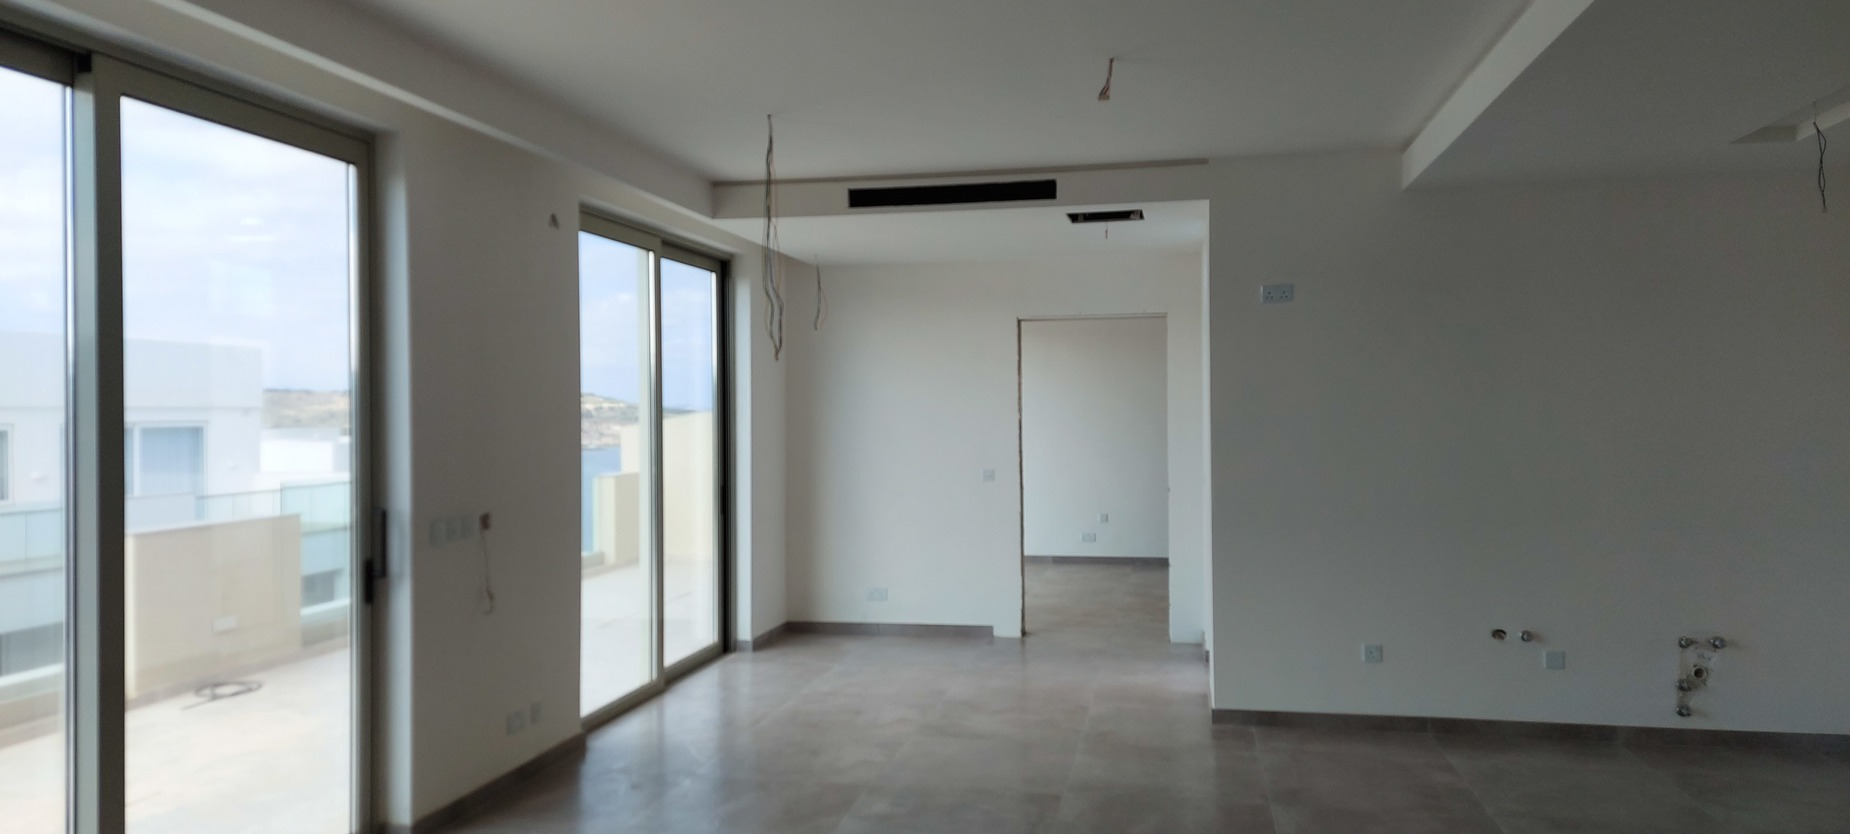 3 bed Penthouse For Sale in St. Paul's Bay, St Paul's Bay - thumb 4